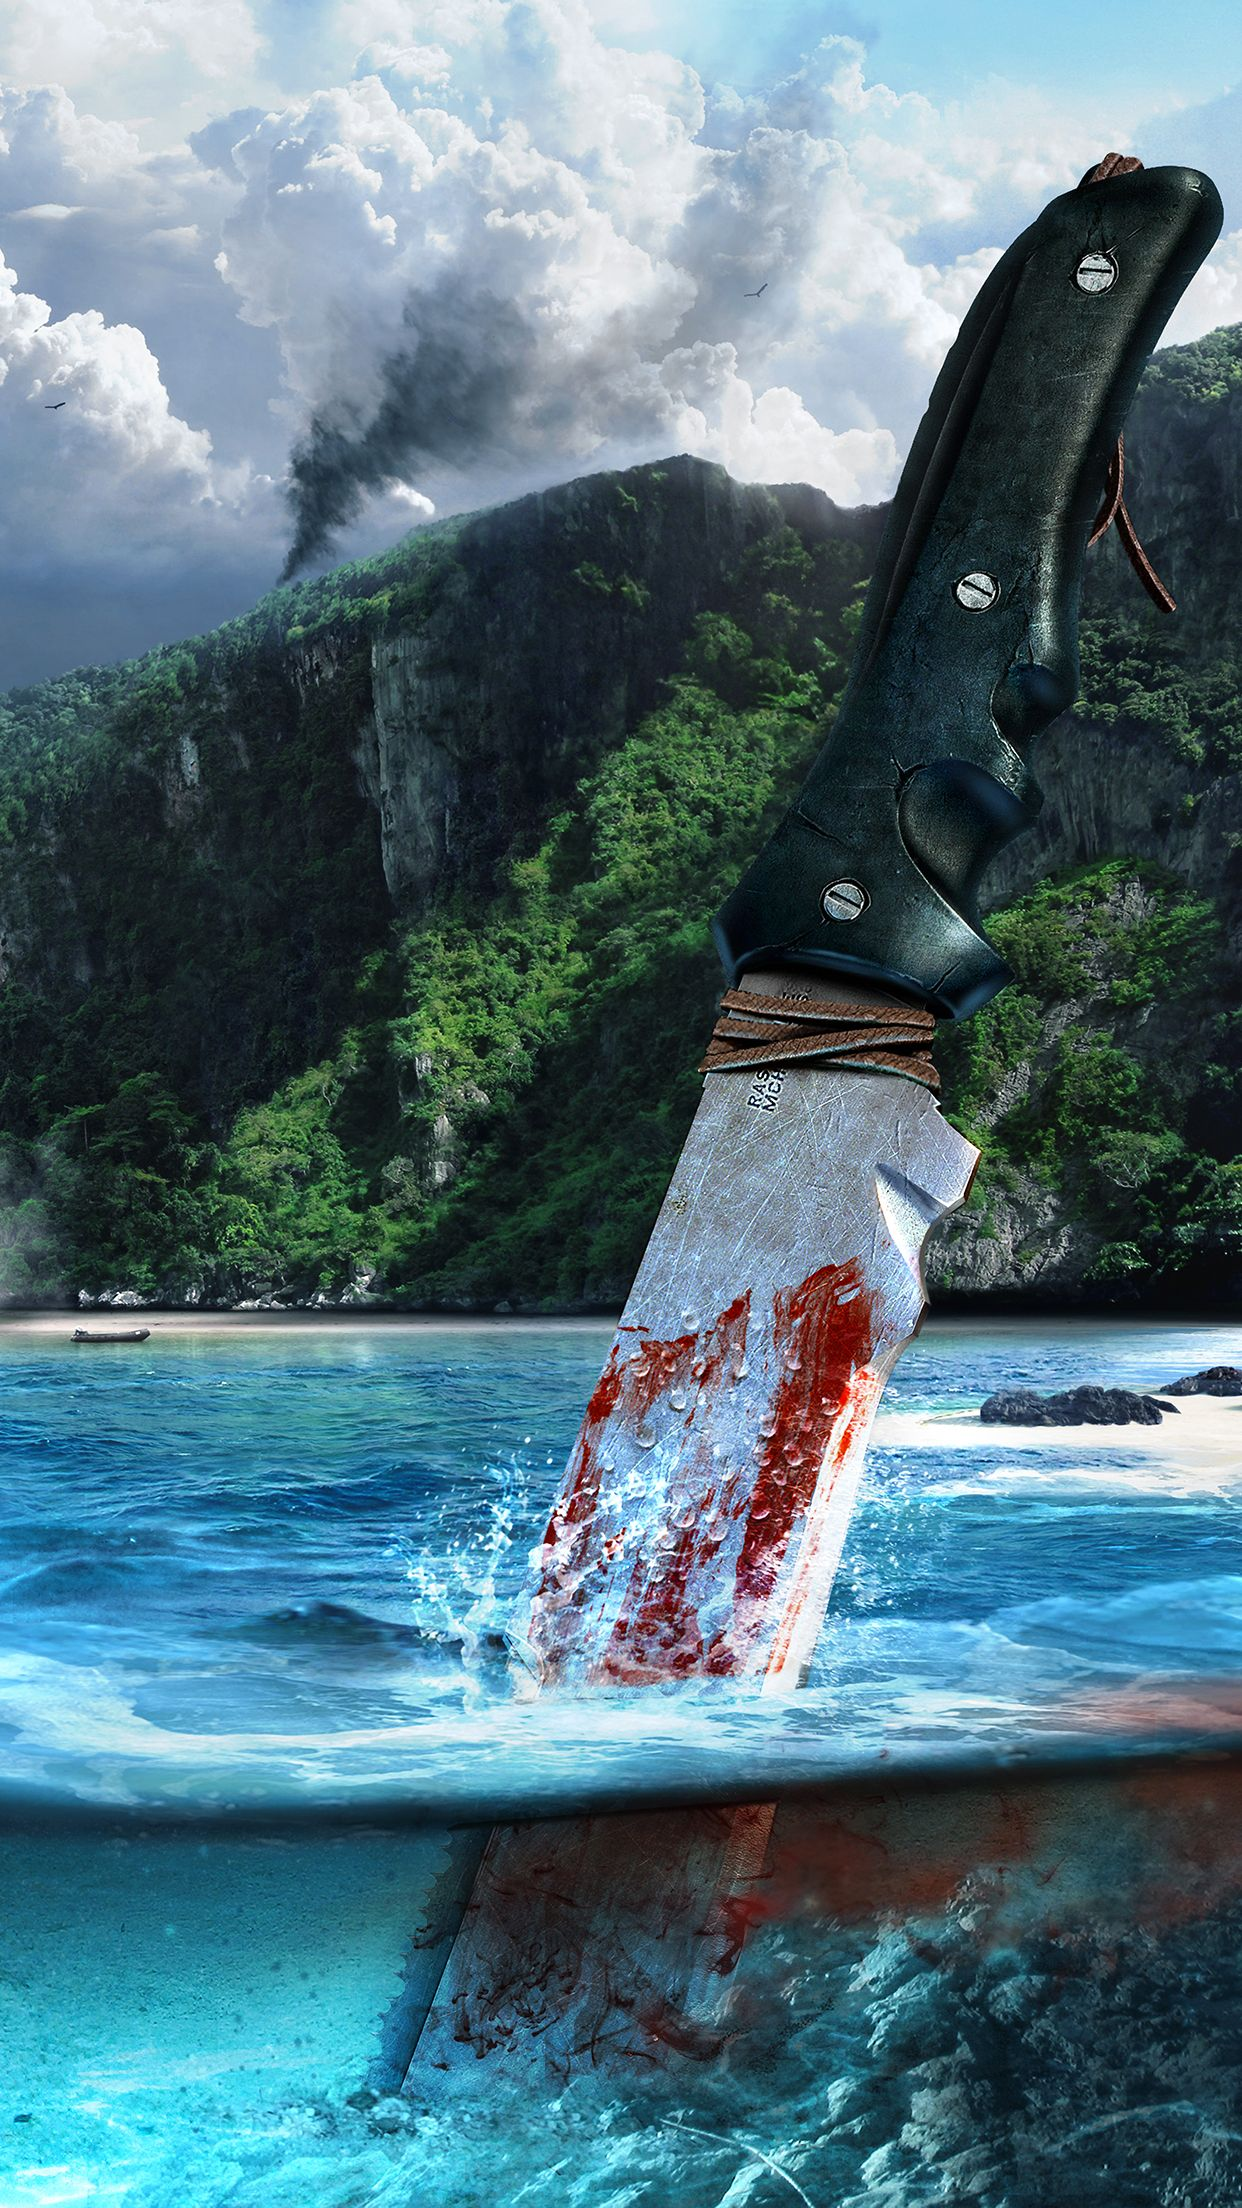 Wallpaper HD iPhone Far Cry 3 Free Download Tapety